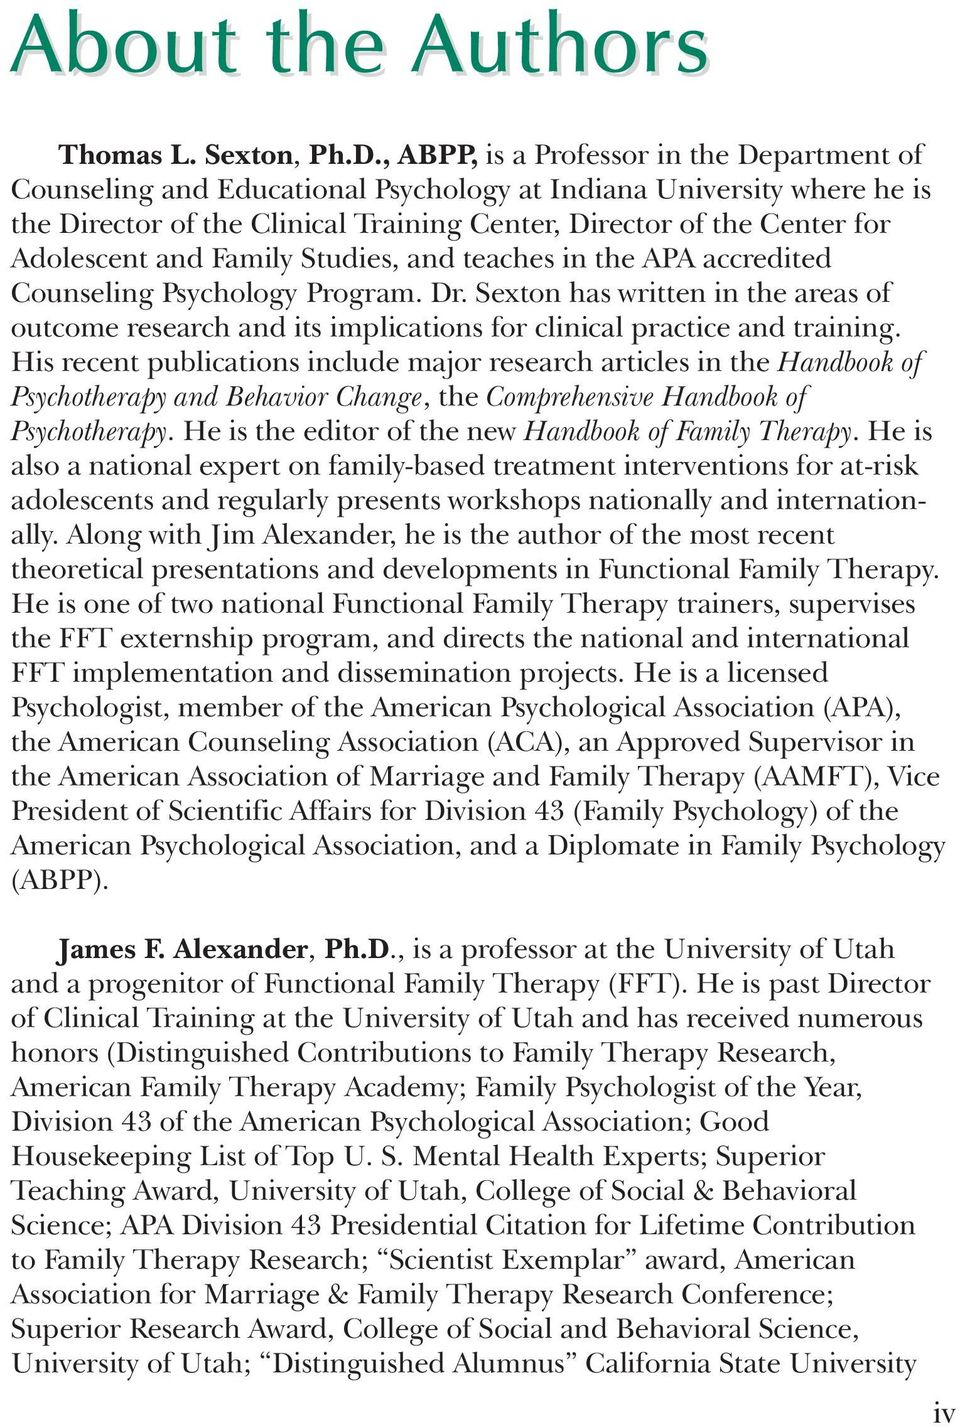 and Family Studies, and teaches in the APA accredited Counseling Psychology Program. Dr. Sexton has written in the areas of outcome research and its implications for clinical practice and training.